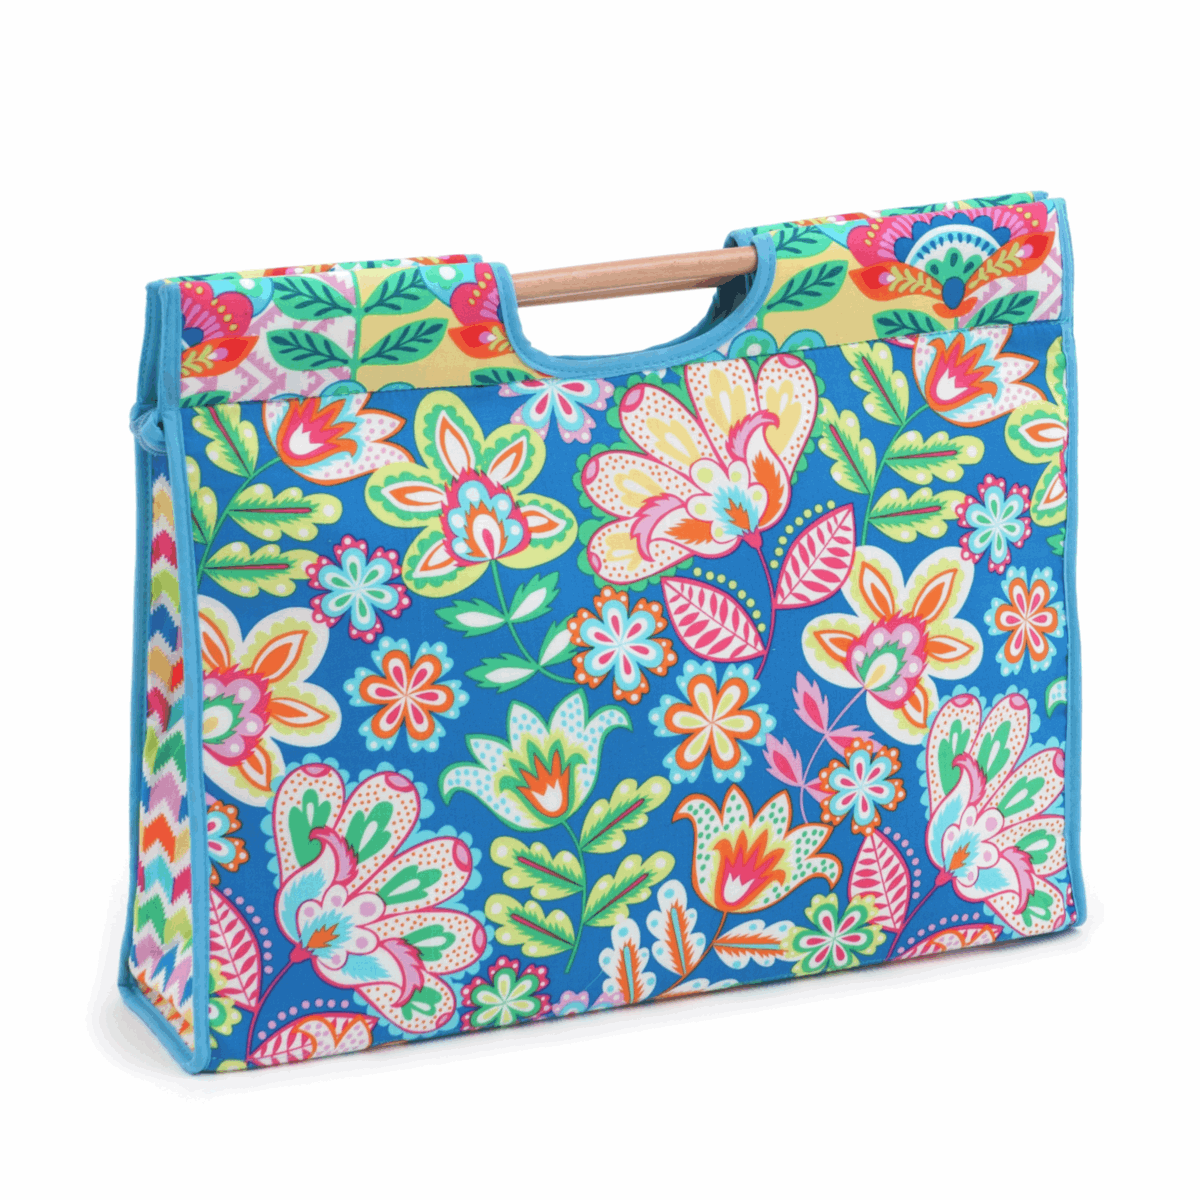 Picture of S&W Collection: Craft Bag with Wooden Handles: Margarita